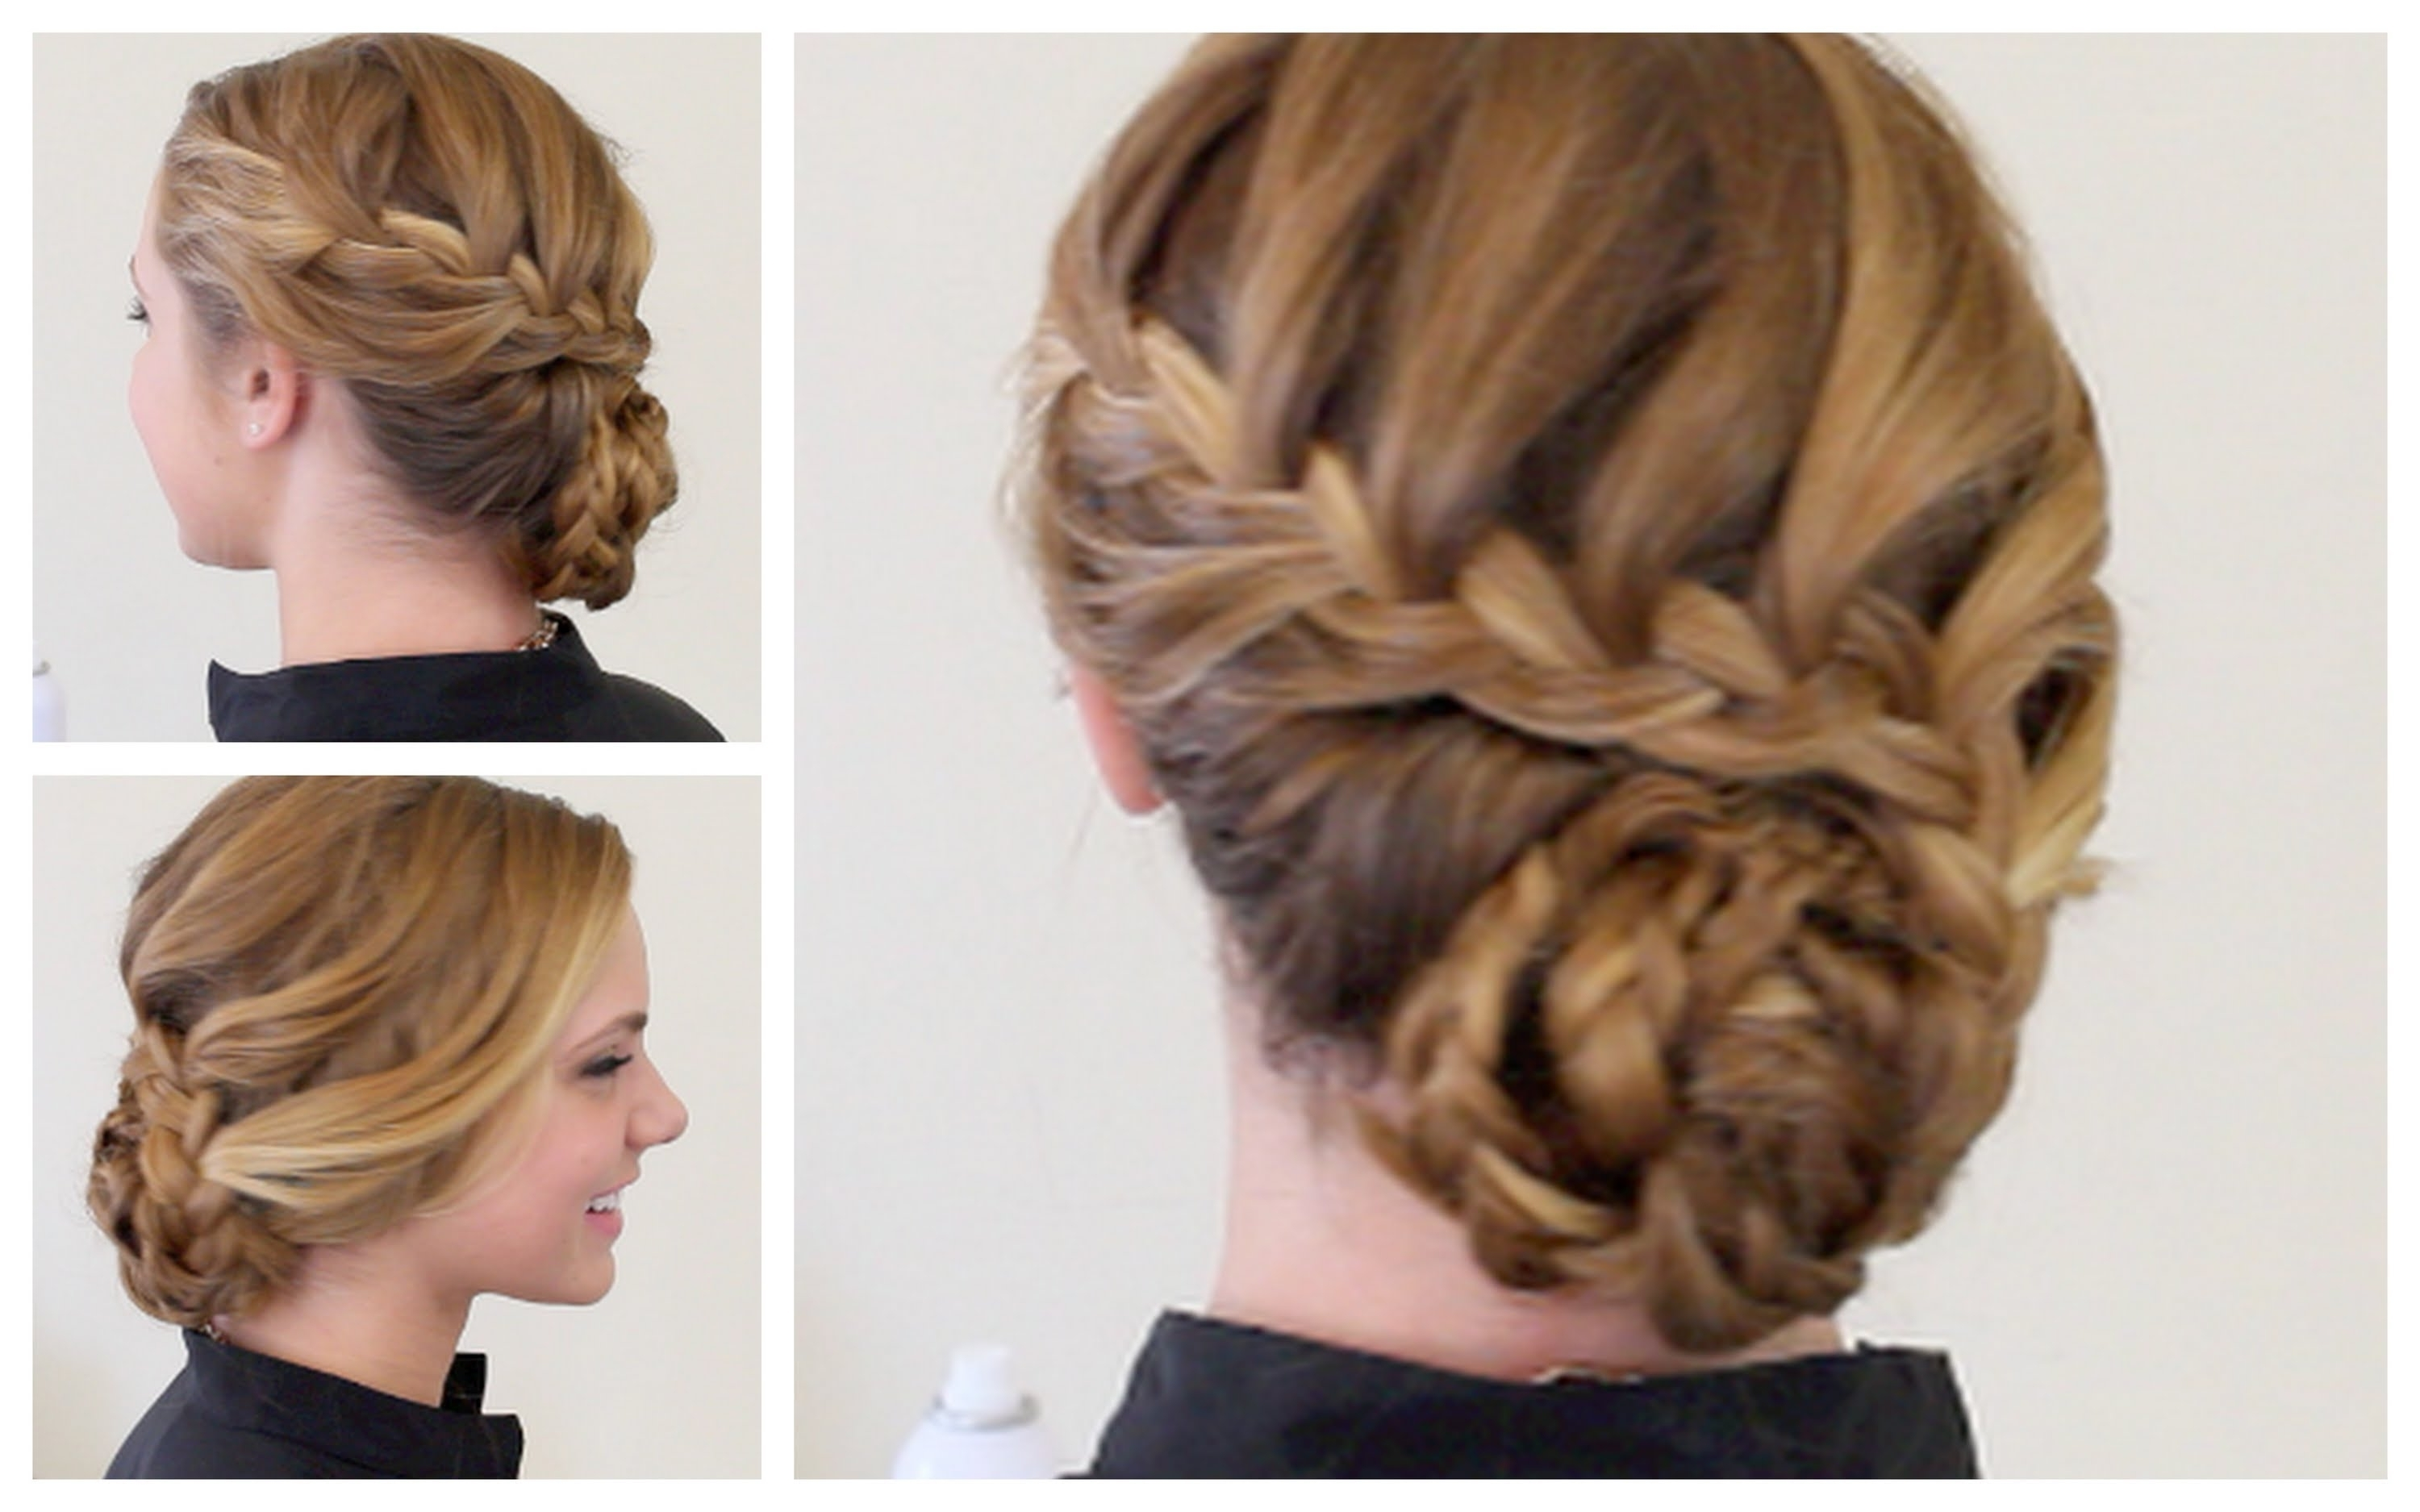 2017 Braid Hairstyles Updo Braided Formal Updo Youtube Intended For Updo Braid Hairstyles (View 3 of 15)